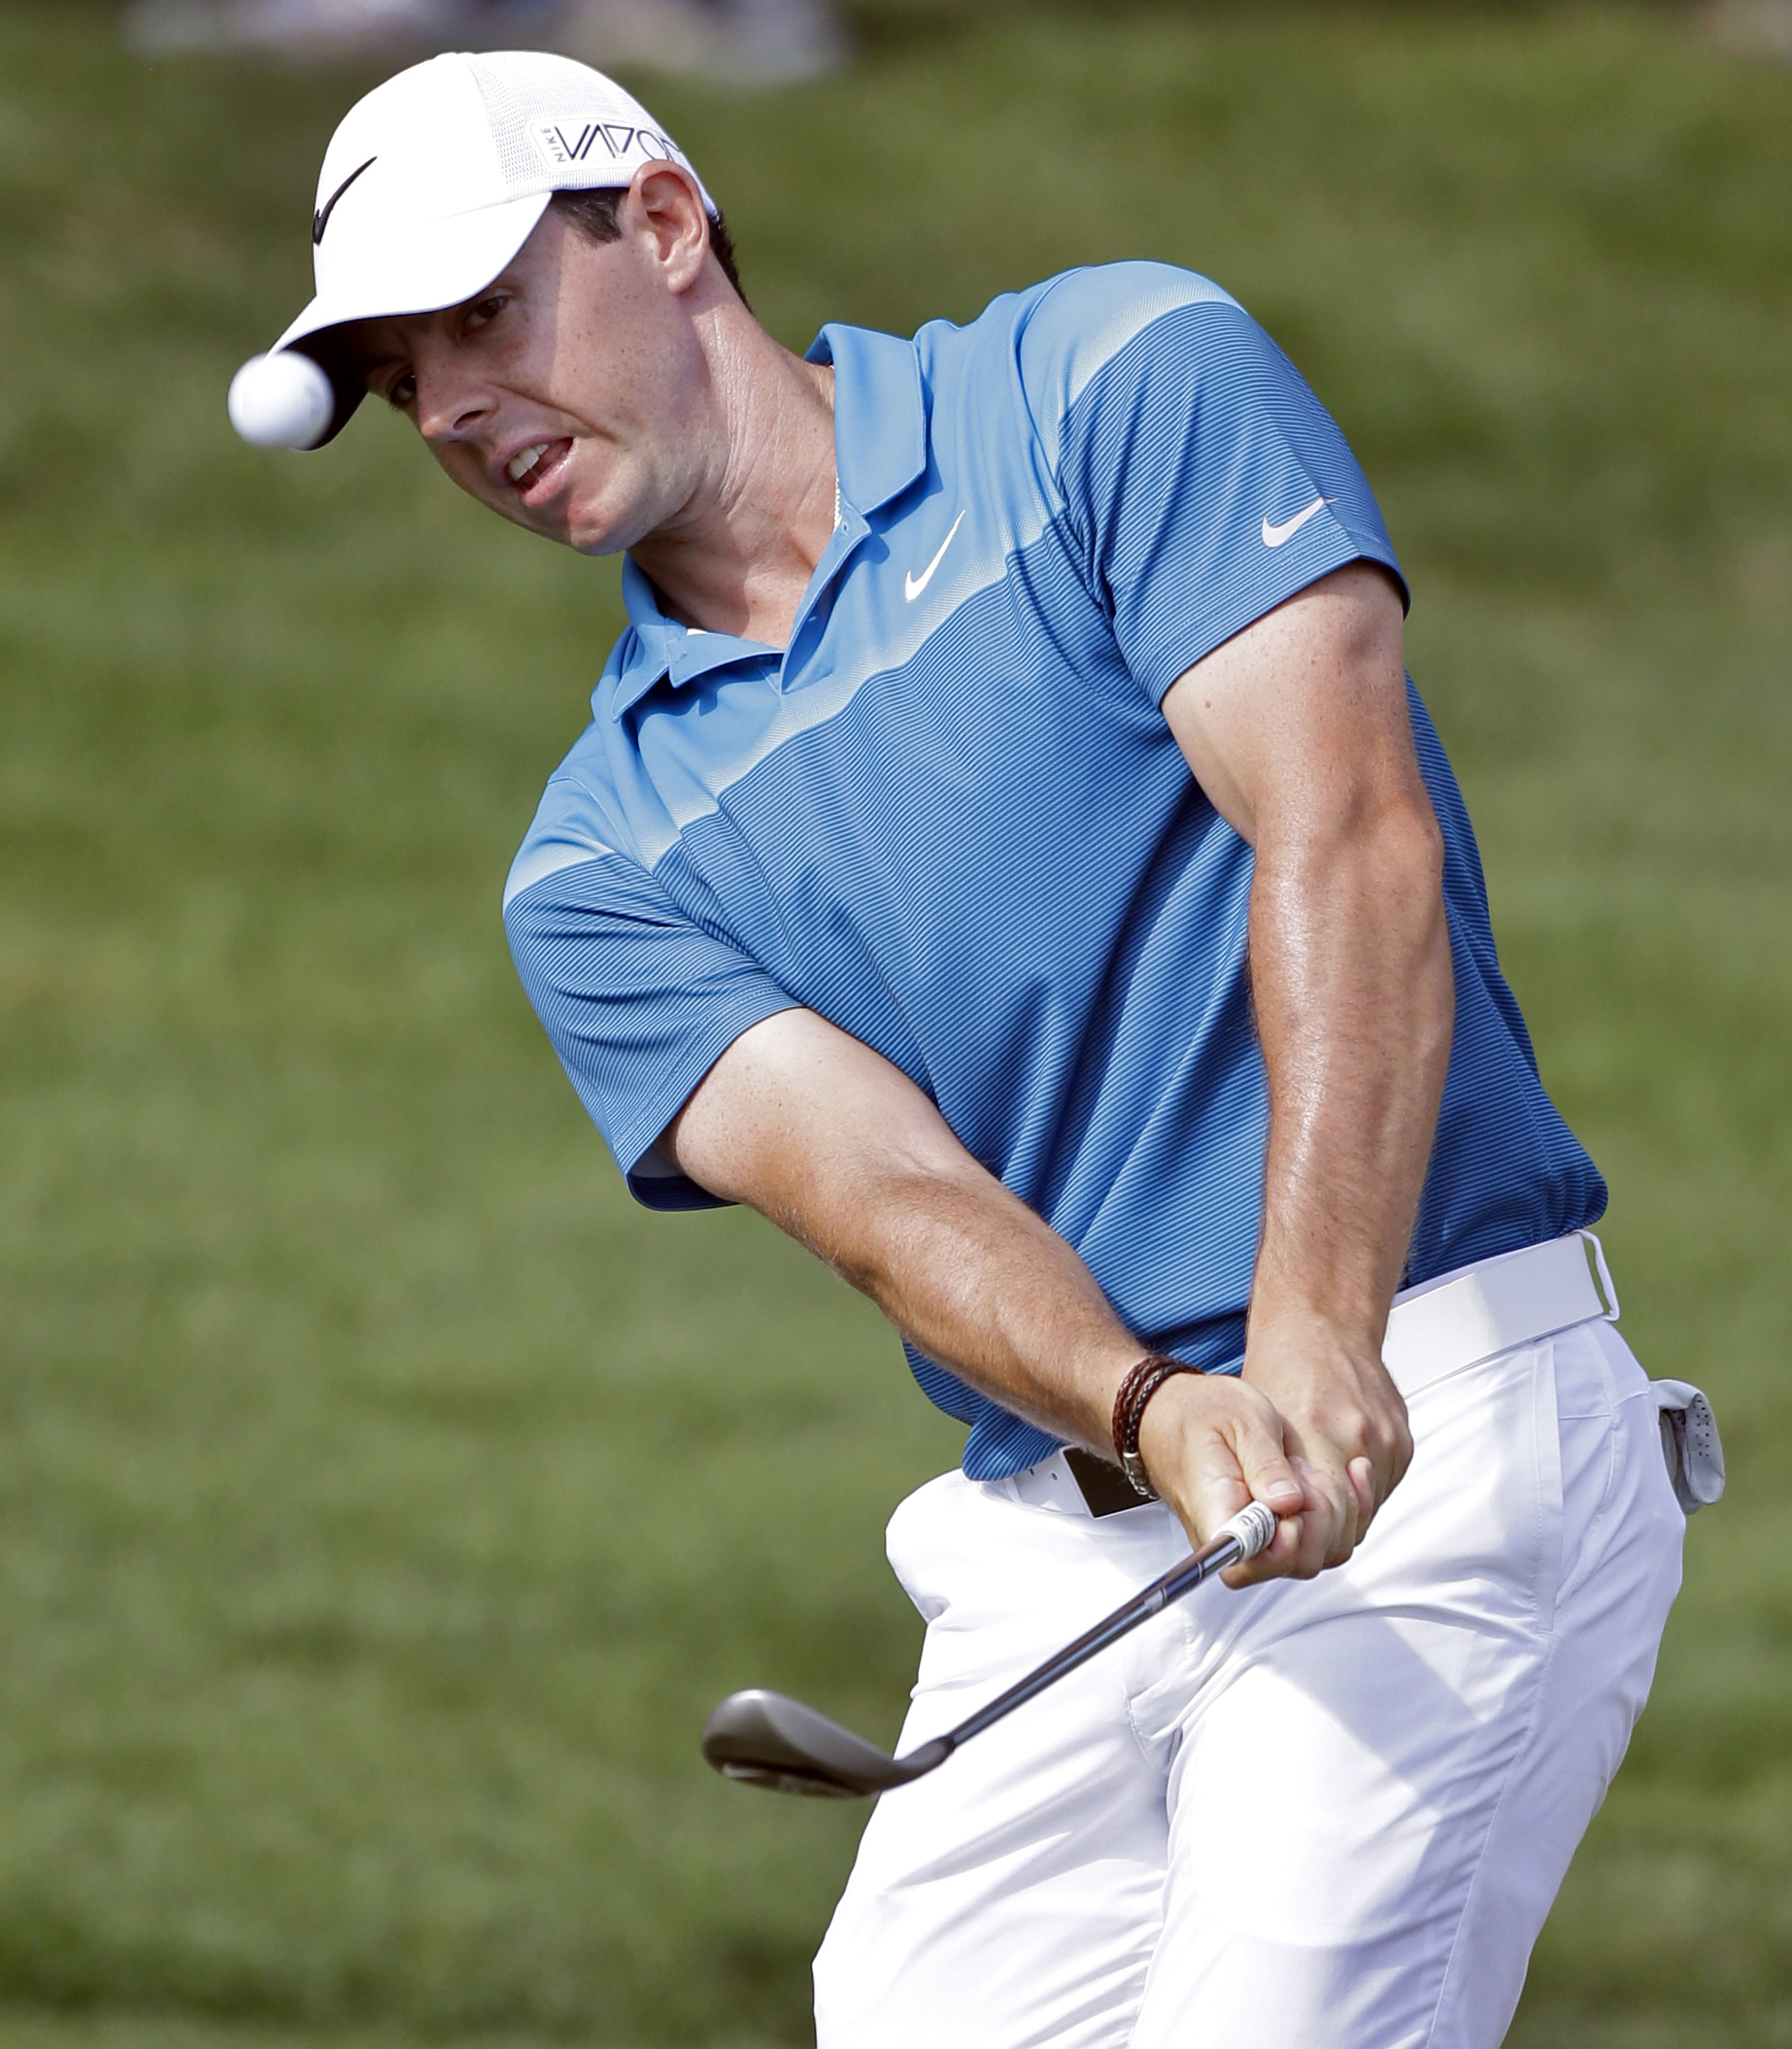 FILE - In this May 17, 2015, file photo, Rory McIlroy, of Northern Ireland, chips to the 15th green during the final round of the Wells Fargo Championship golf tournament at Quail Hollow Club in Charlotte, N.C. World number one McIlroy looks increasingly